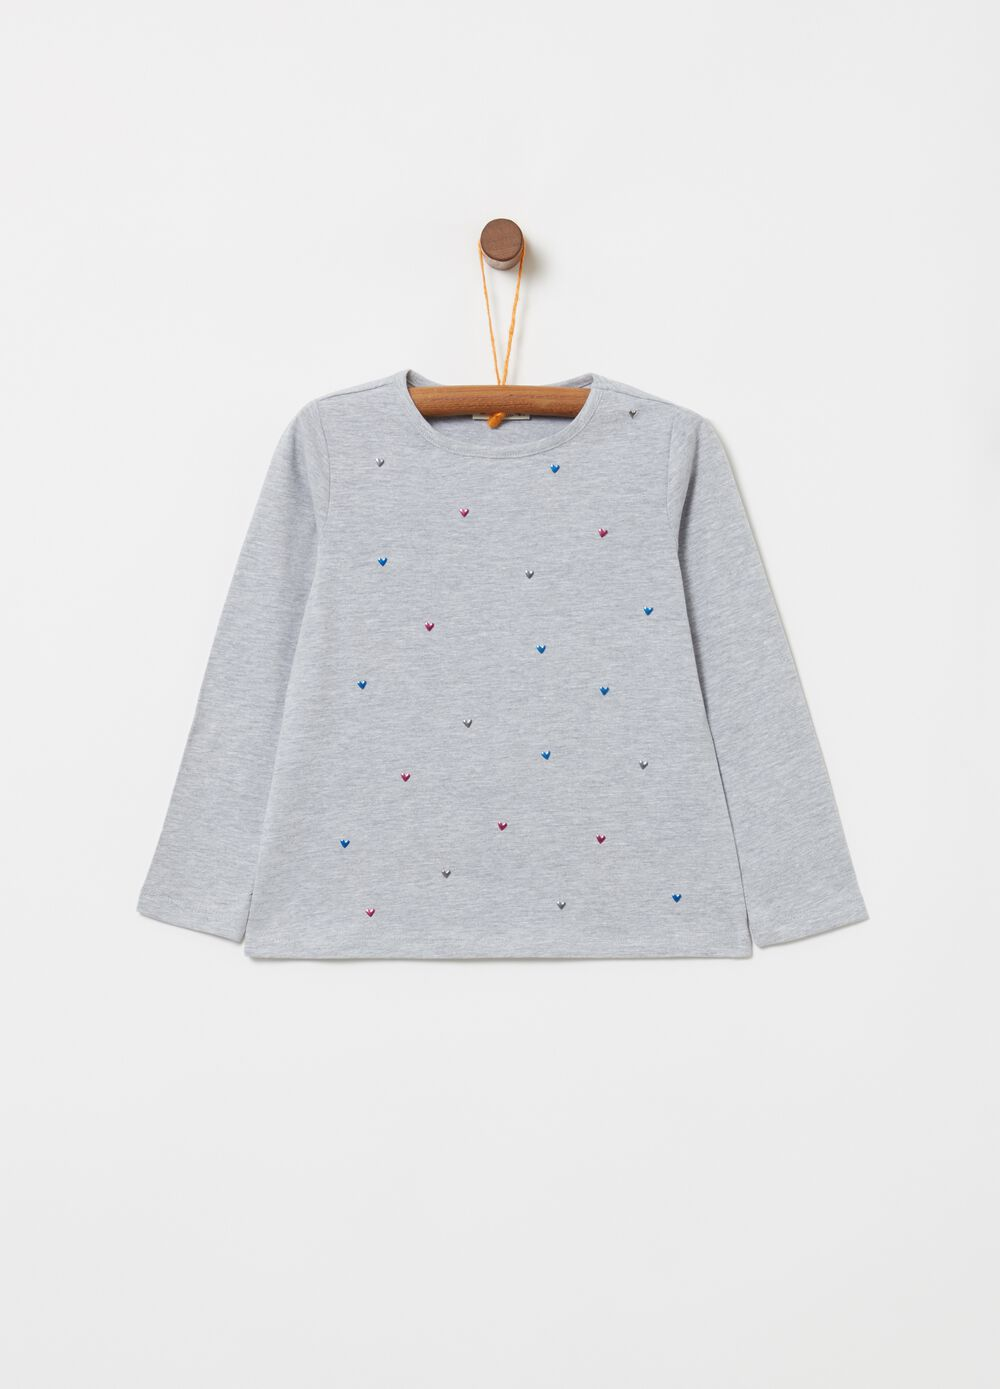 Stretch mélange T-shirt with small hearts